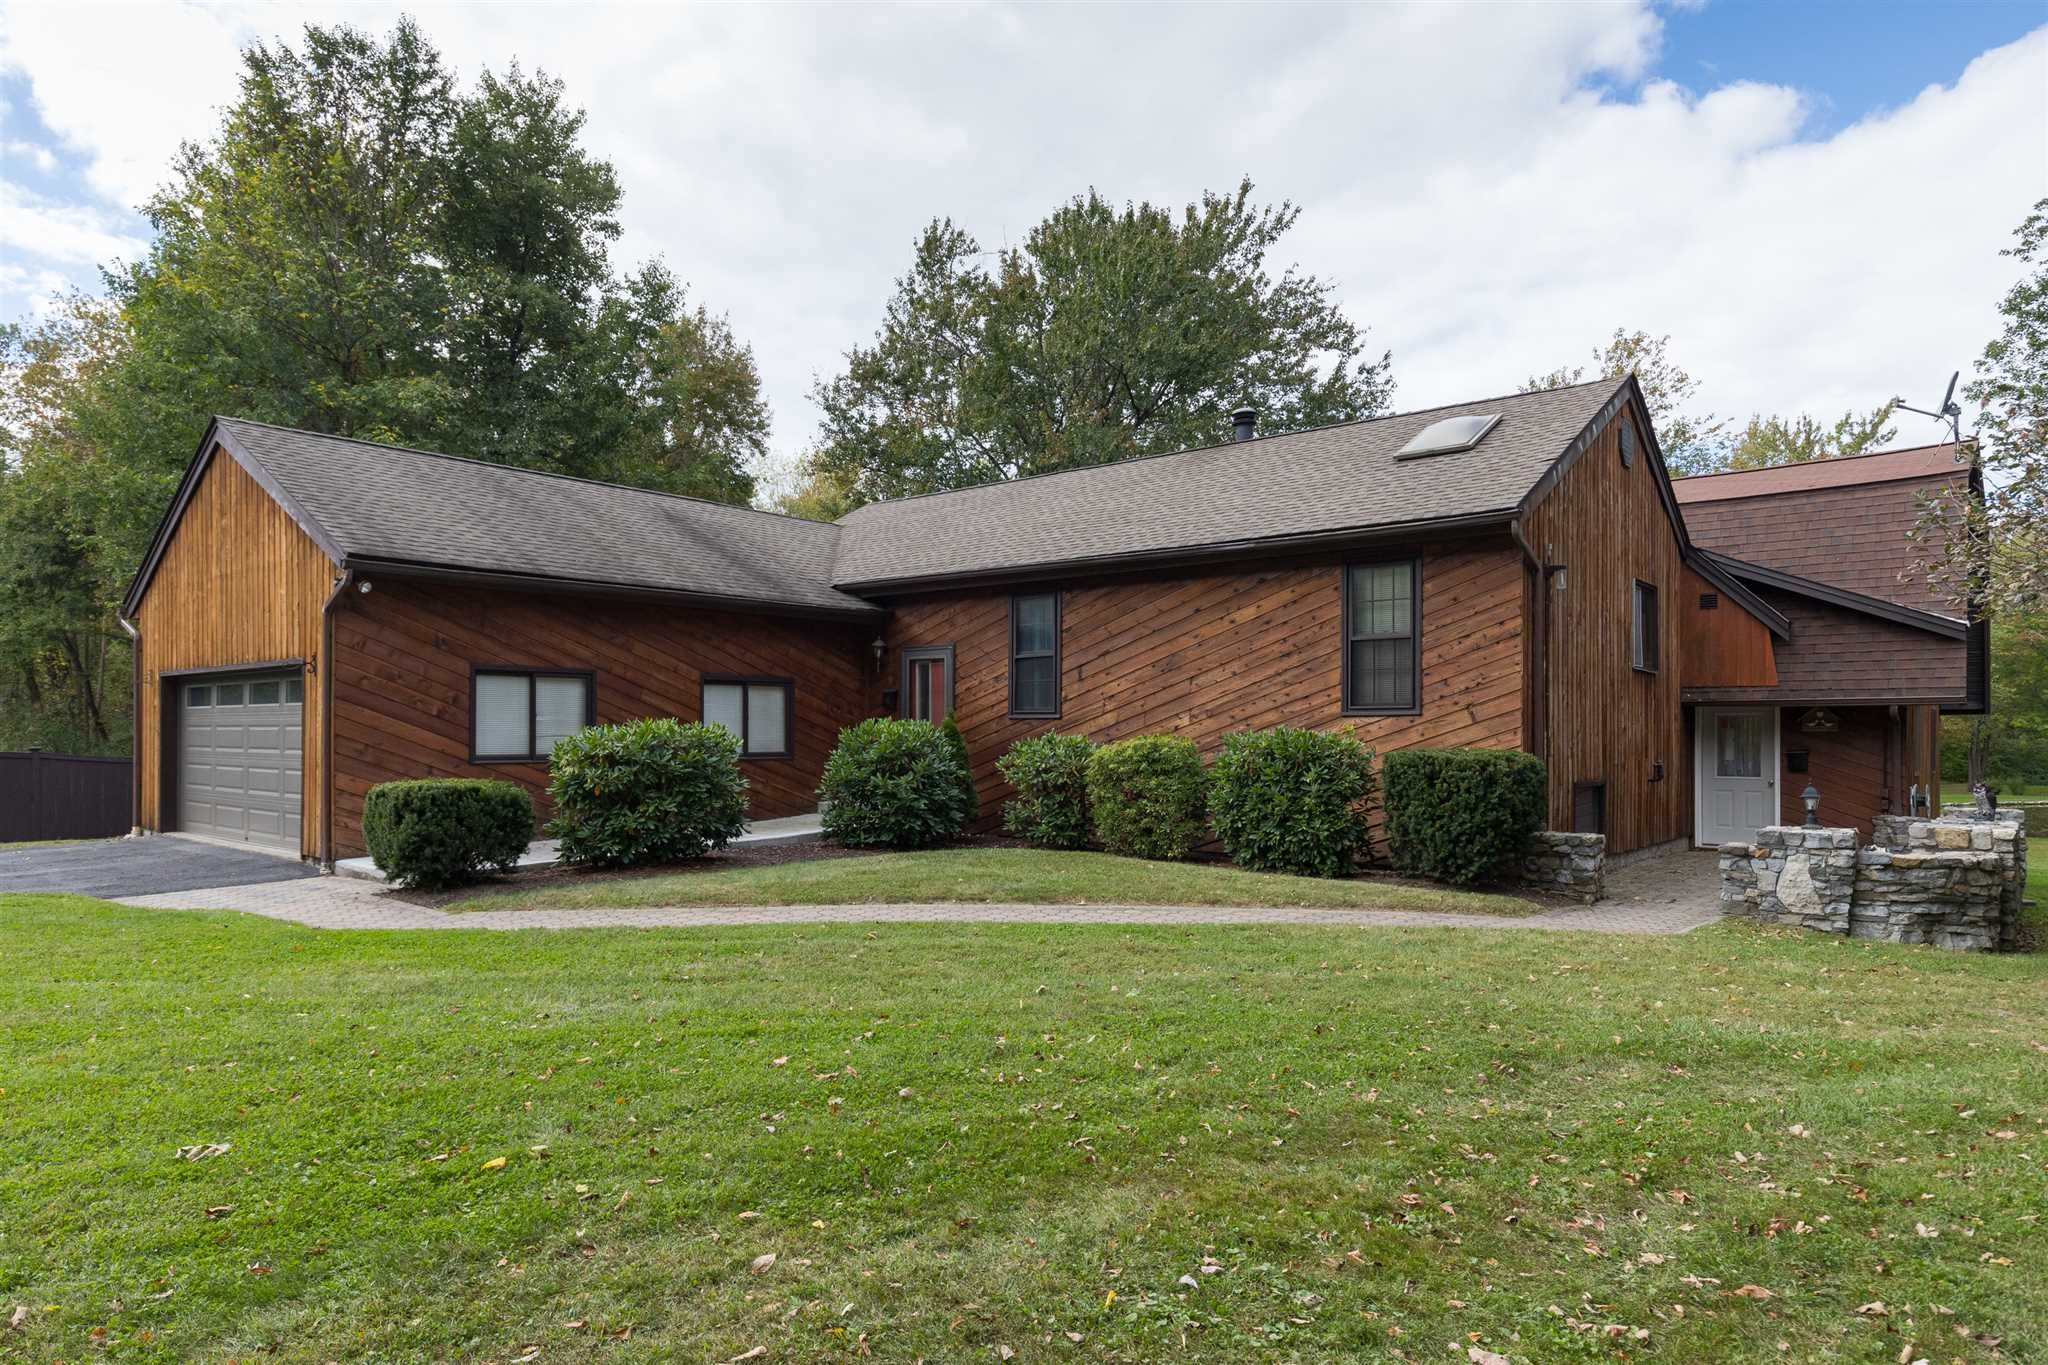 Single Family Home for Sale at 15 COLLARBARK Road 15 COLLARBARK Road East Fishkill, New York 12533 United States